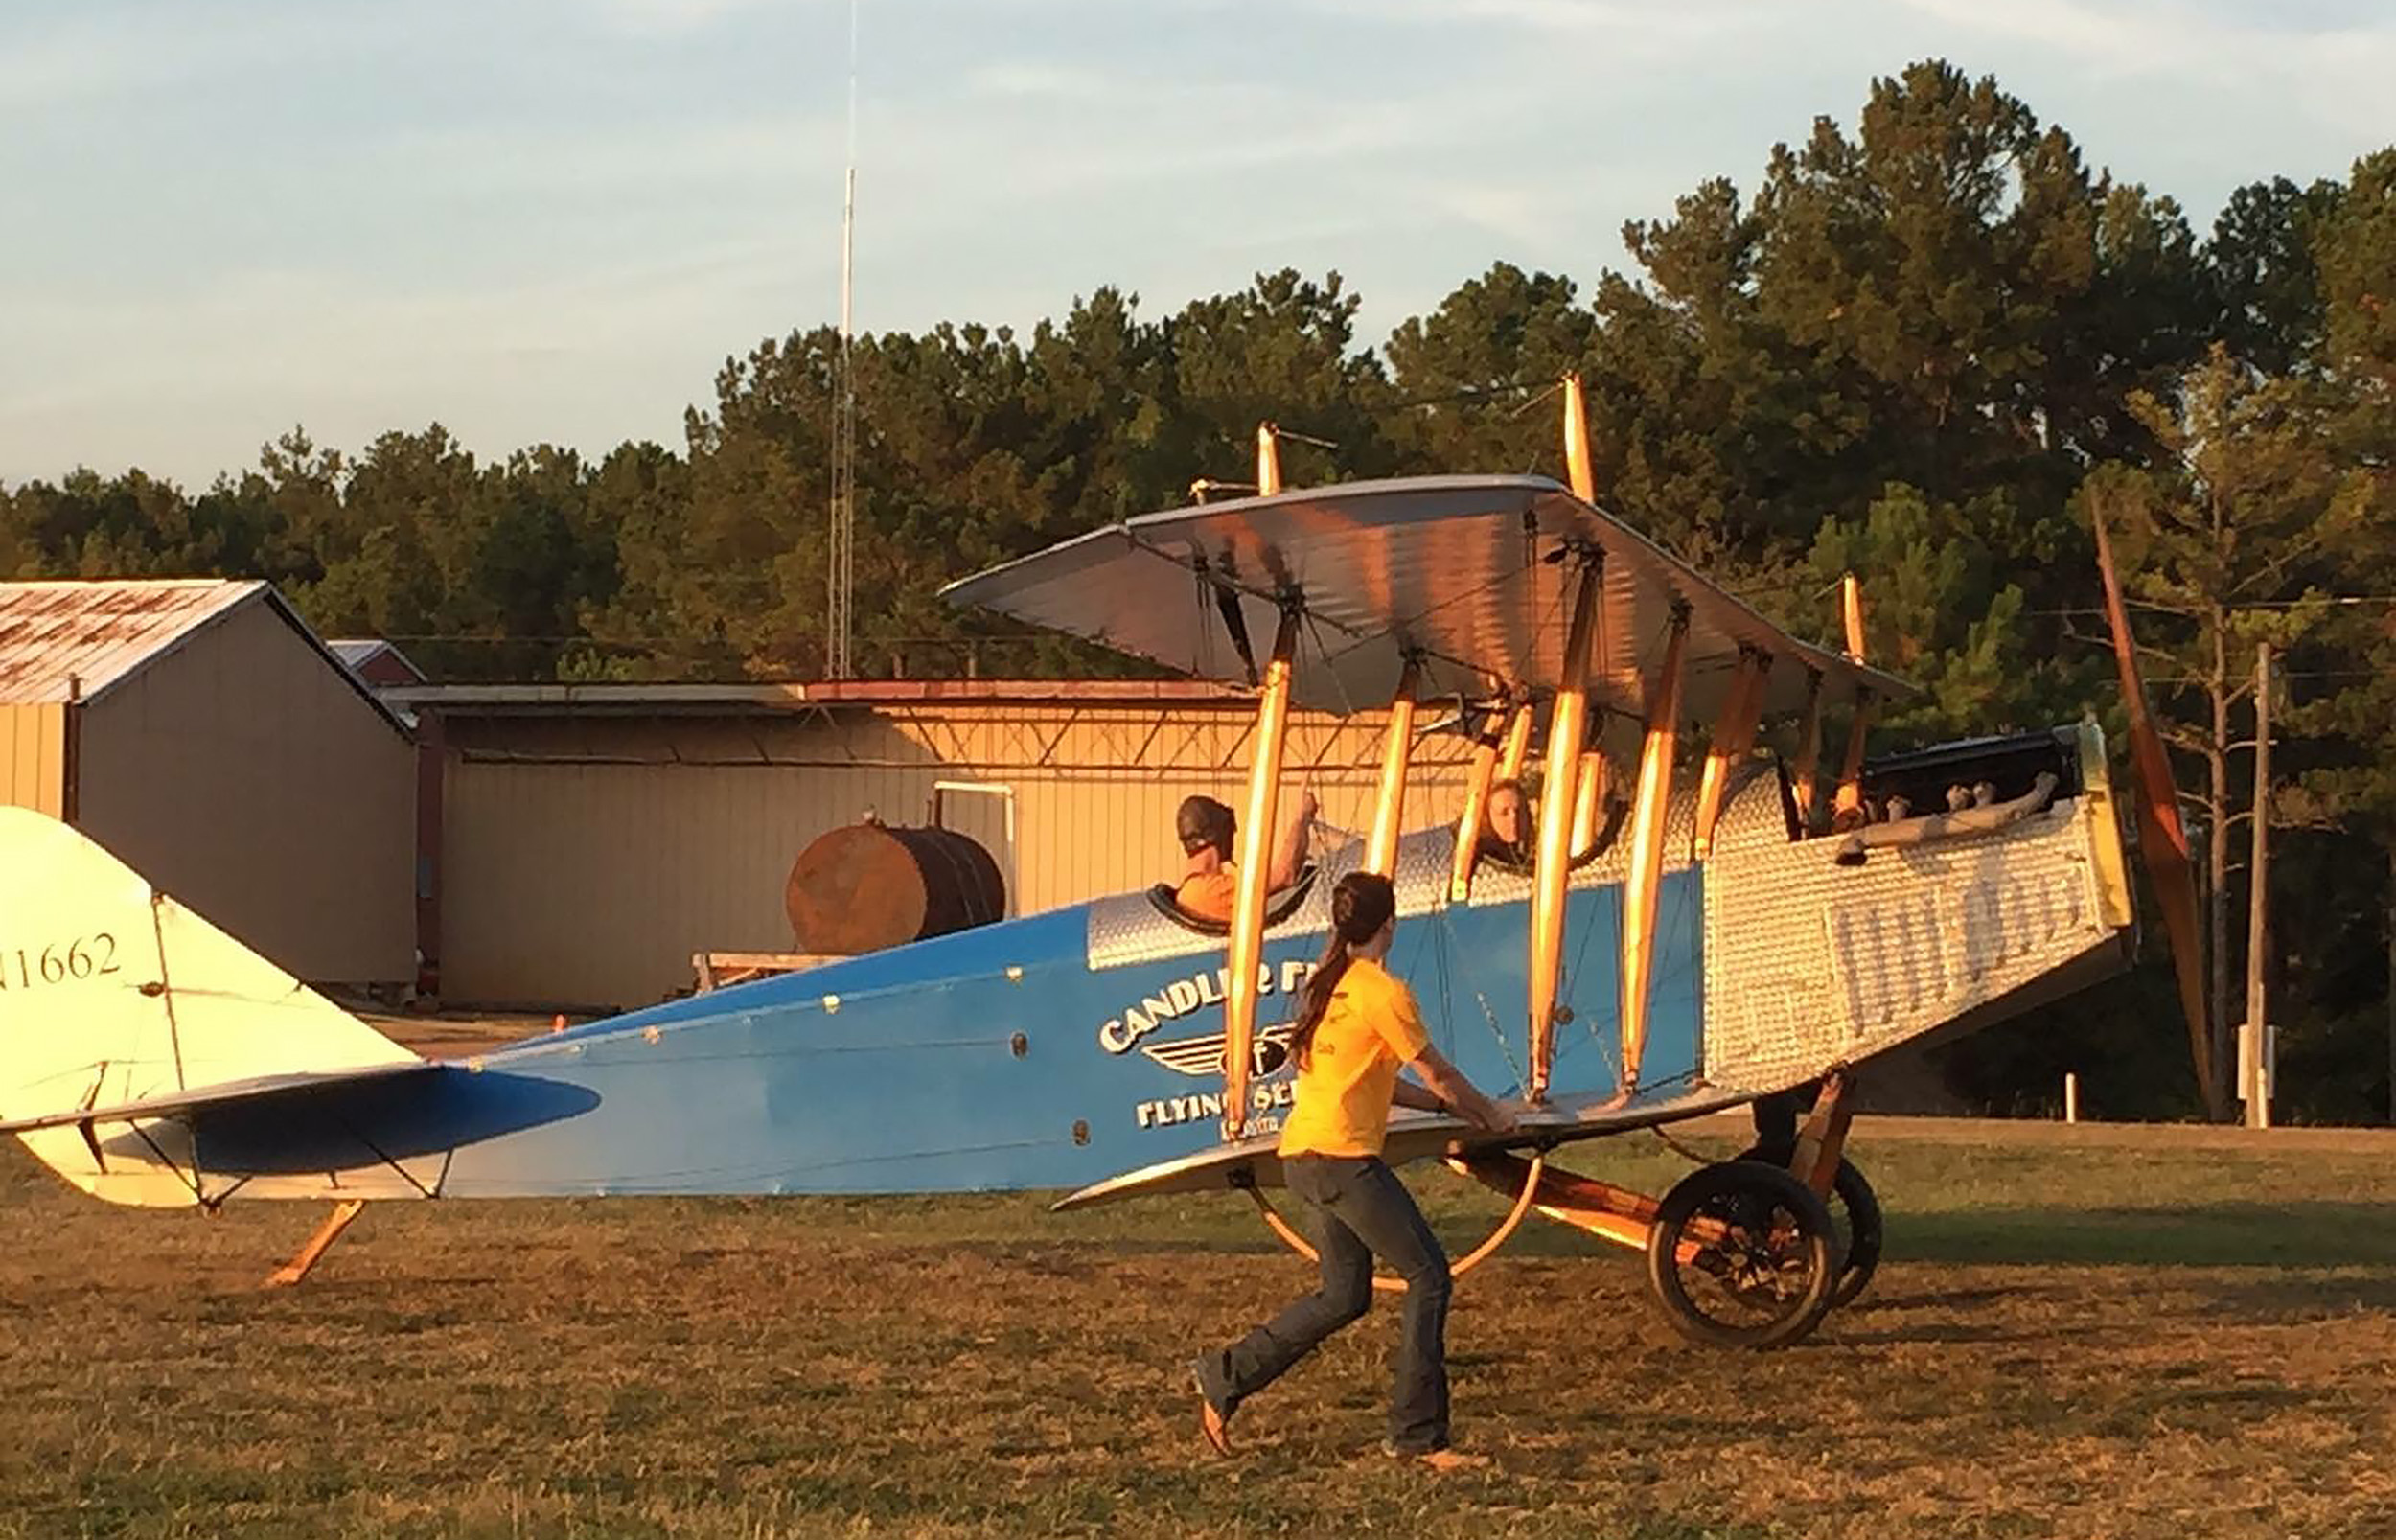 Student pilot Cayla McLeod helps wing walk a Curtiss JN-4 Jenny for Ron Alexander at his Peach State Aerodrome in Williamson, Georgia. Photo courtesy of Cayla McLeod.